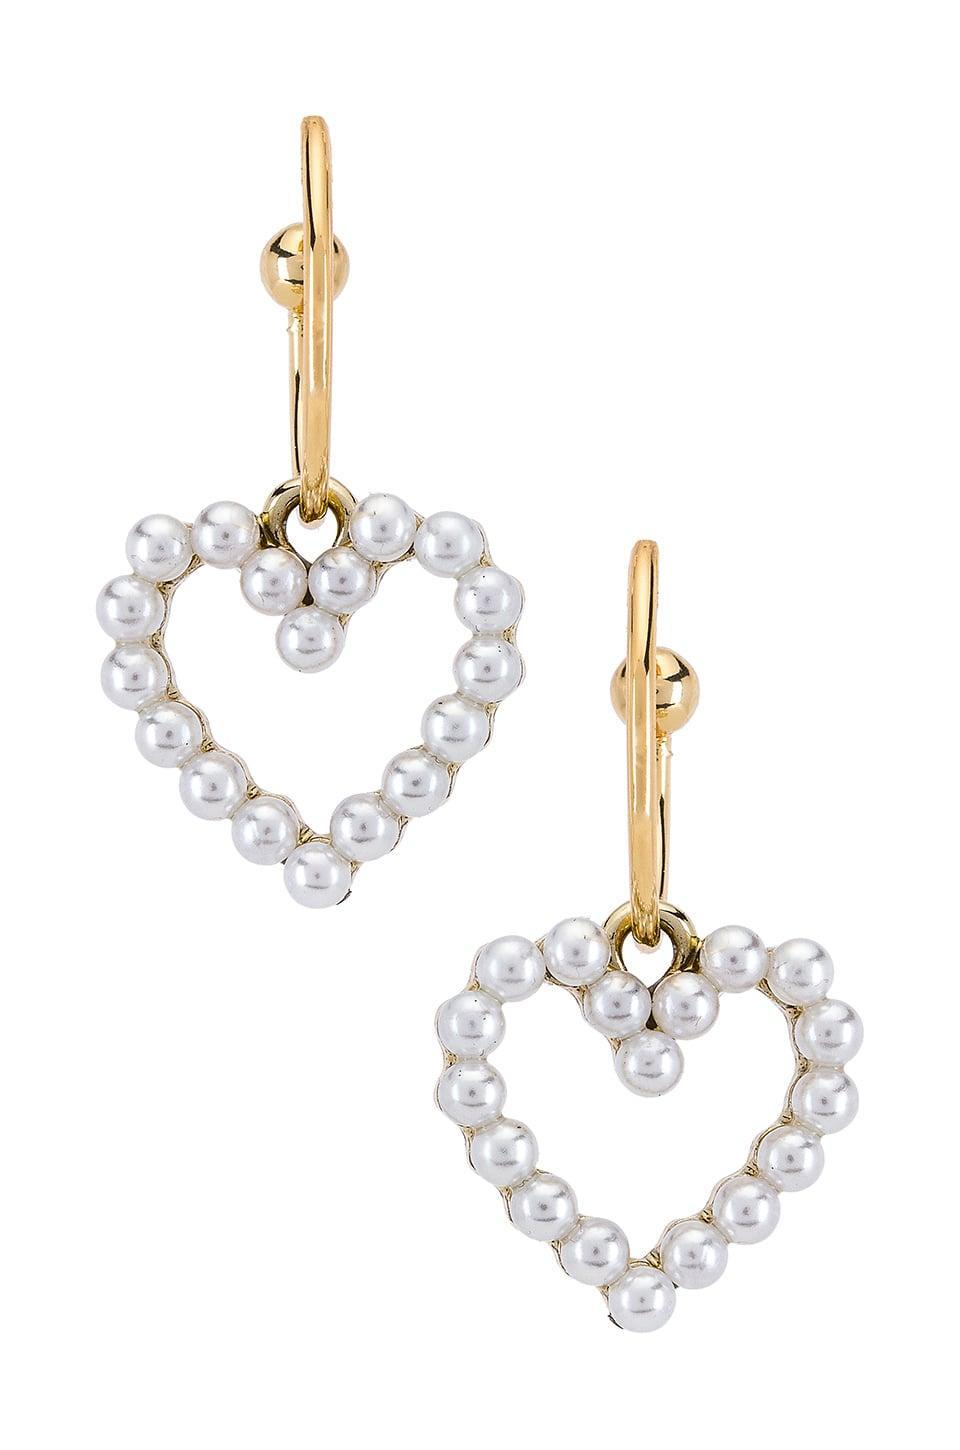 """<p><a href=""""https://www.popsugar.com/buy/Shashi-Heart-Pearl-Hoops-497266?p_name=Shashi%20Heart%20of%20Pearl%20Hoops&retailer=revolve.com&pid=497266&price=38&evar1=fab%3Aus&evar9=46708649&evar98=https%3A%2F%2Fwww.popsugar.com%2Ffashion%2Fphoto-gallery%2F46708649%2Fimage%2F46709060%2FShashi-Heart-Pearl-Hoops&list1=shopping%2Cjewelry%2Cunder%20%2450%2Caffordable%20shopping%2Cjewelry%20shopping&prop13=mobile&pdata=1"""" rel=""""nofollow noopener"""" class=""""link rapid-noclick-resp"""" target=""""_blank"""" data-ylk=""""slk:Shashi Heart of Pearl Hoops"""">Shashi Heart of Pearl Hoops</a> ($38)</p>"""